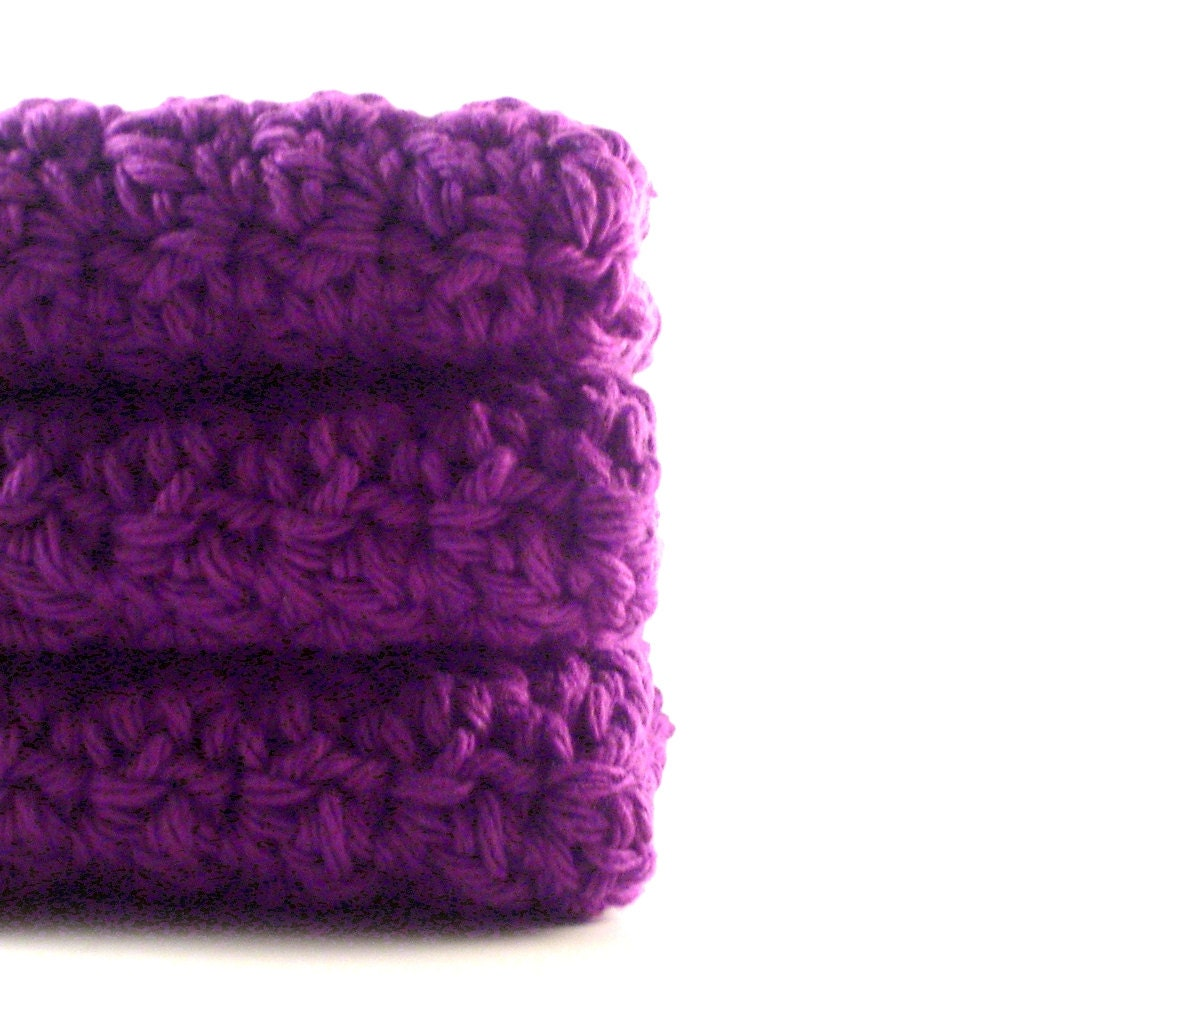 Cotton Crochet Dishcloths Washcloths Radiant Orchid Purple Set of 3 crocheted rags dish scrubbies - PrairieLoops